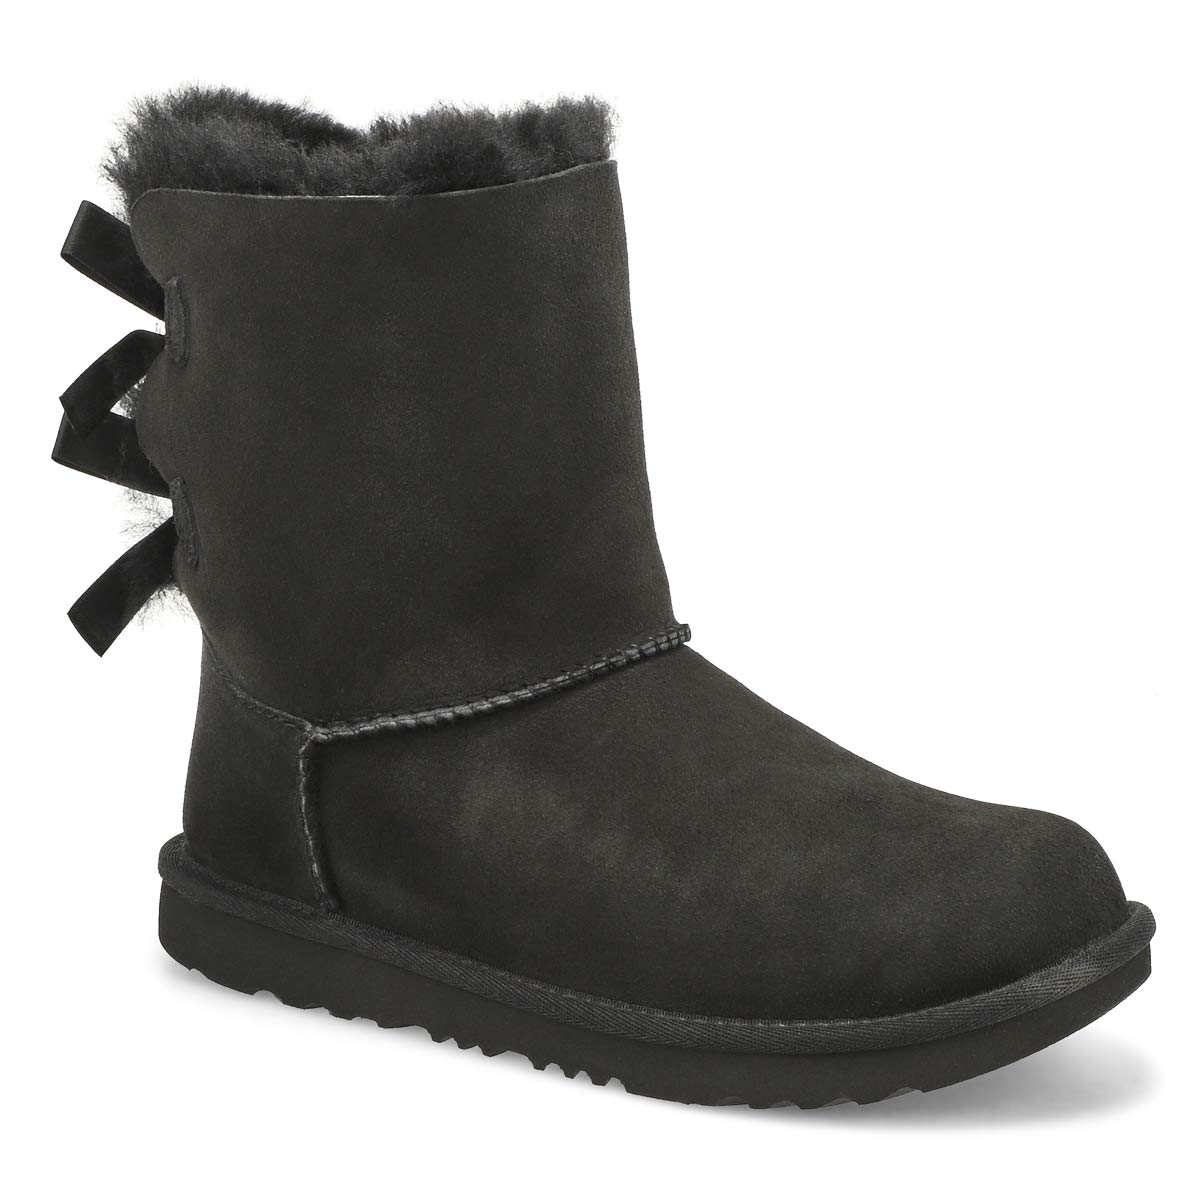 Girls' BAILEY BOW II black sheepskin boots